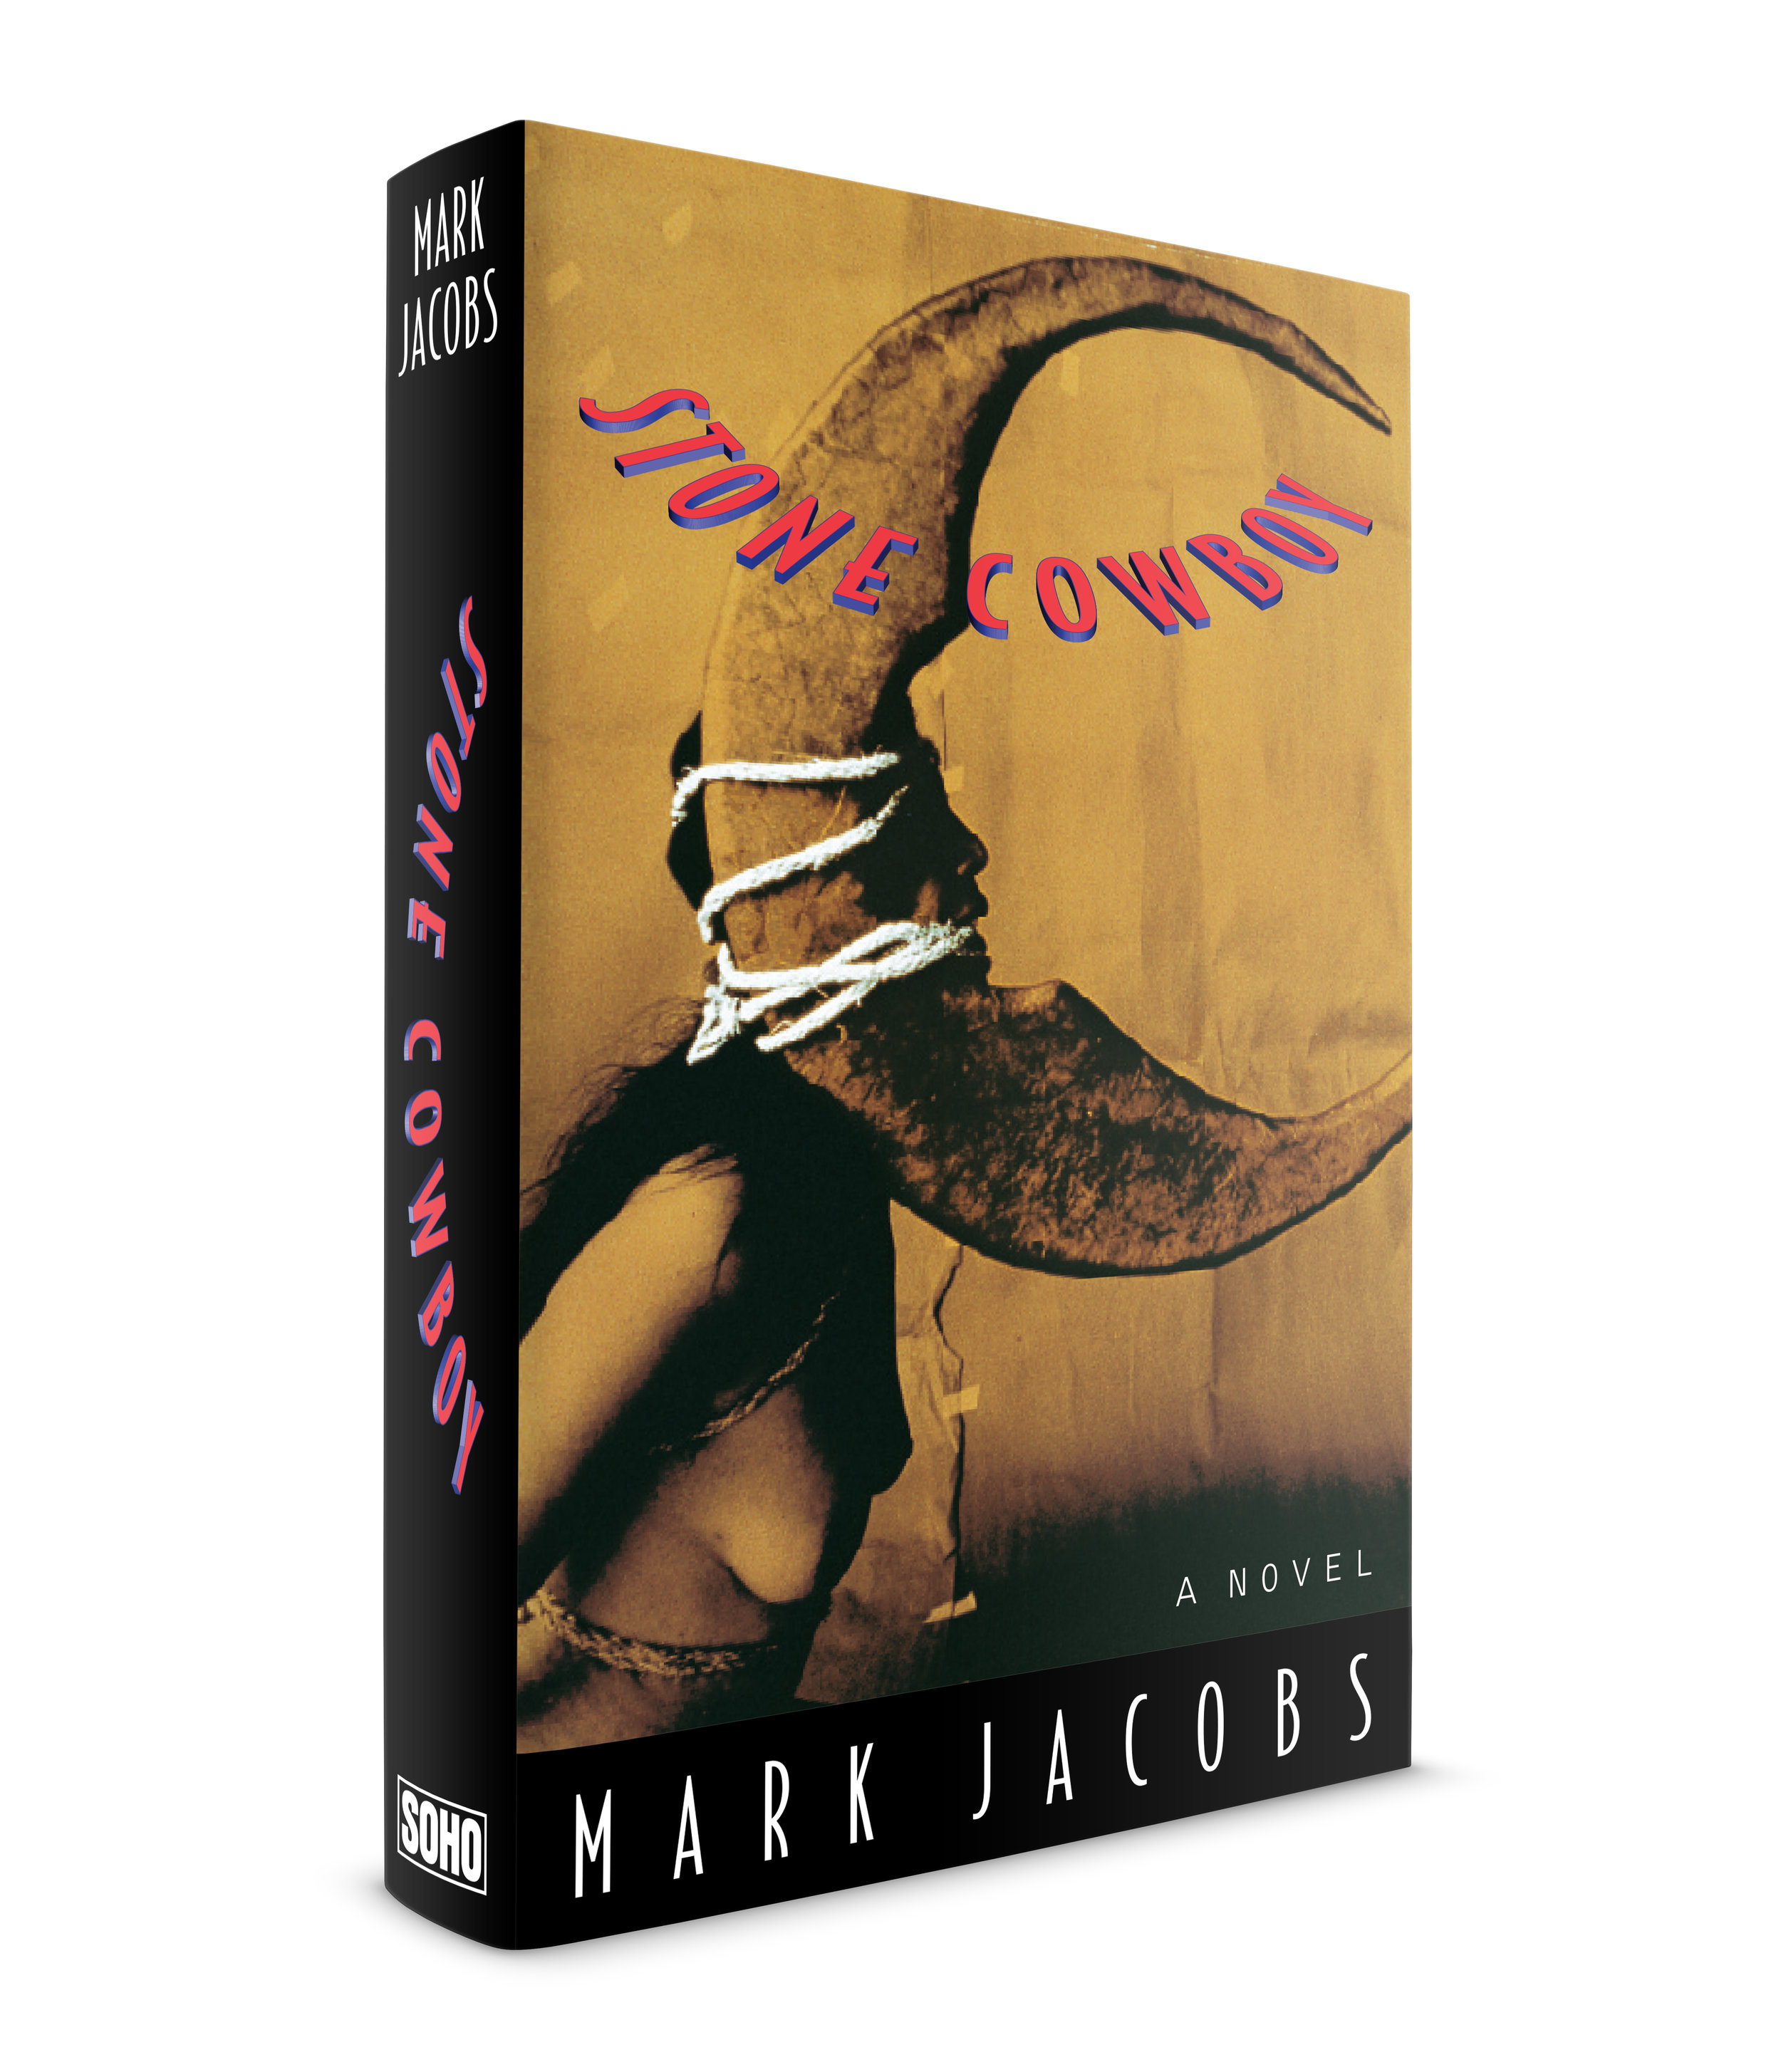 Stone Cowboy by Mark Jacobs. Published by Soho Press. This was my second jacket commissioned by Laura Hruska and  Juris Jurjevics at Soho, the day after my first assignment. An American magician vanishes in Bolivia while searching for the true magic which he feels exists in the altiplano and mythic Indian cultures of the country. His sister travels there to find him and enlists the help of another American who speaks Spanish and the Aymara Indian dialect. Photograph by the Guatemalan photographer Luis González Palma.  One of the editors at Soho had seen an exhibition of this photographer's work in California and asked me to take a look at it. There was certainly the haunting, magic realism of the region in his images. And that color, with white accents. We chose this image then I created the semicircular title levitating over the image. Typeface is Bodega Sans.